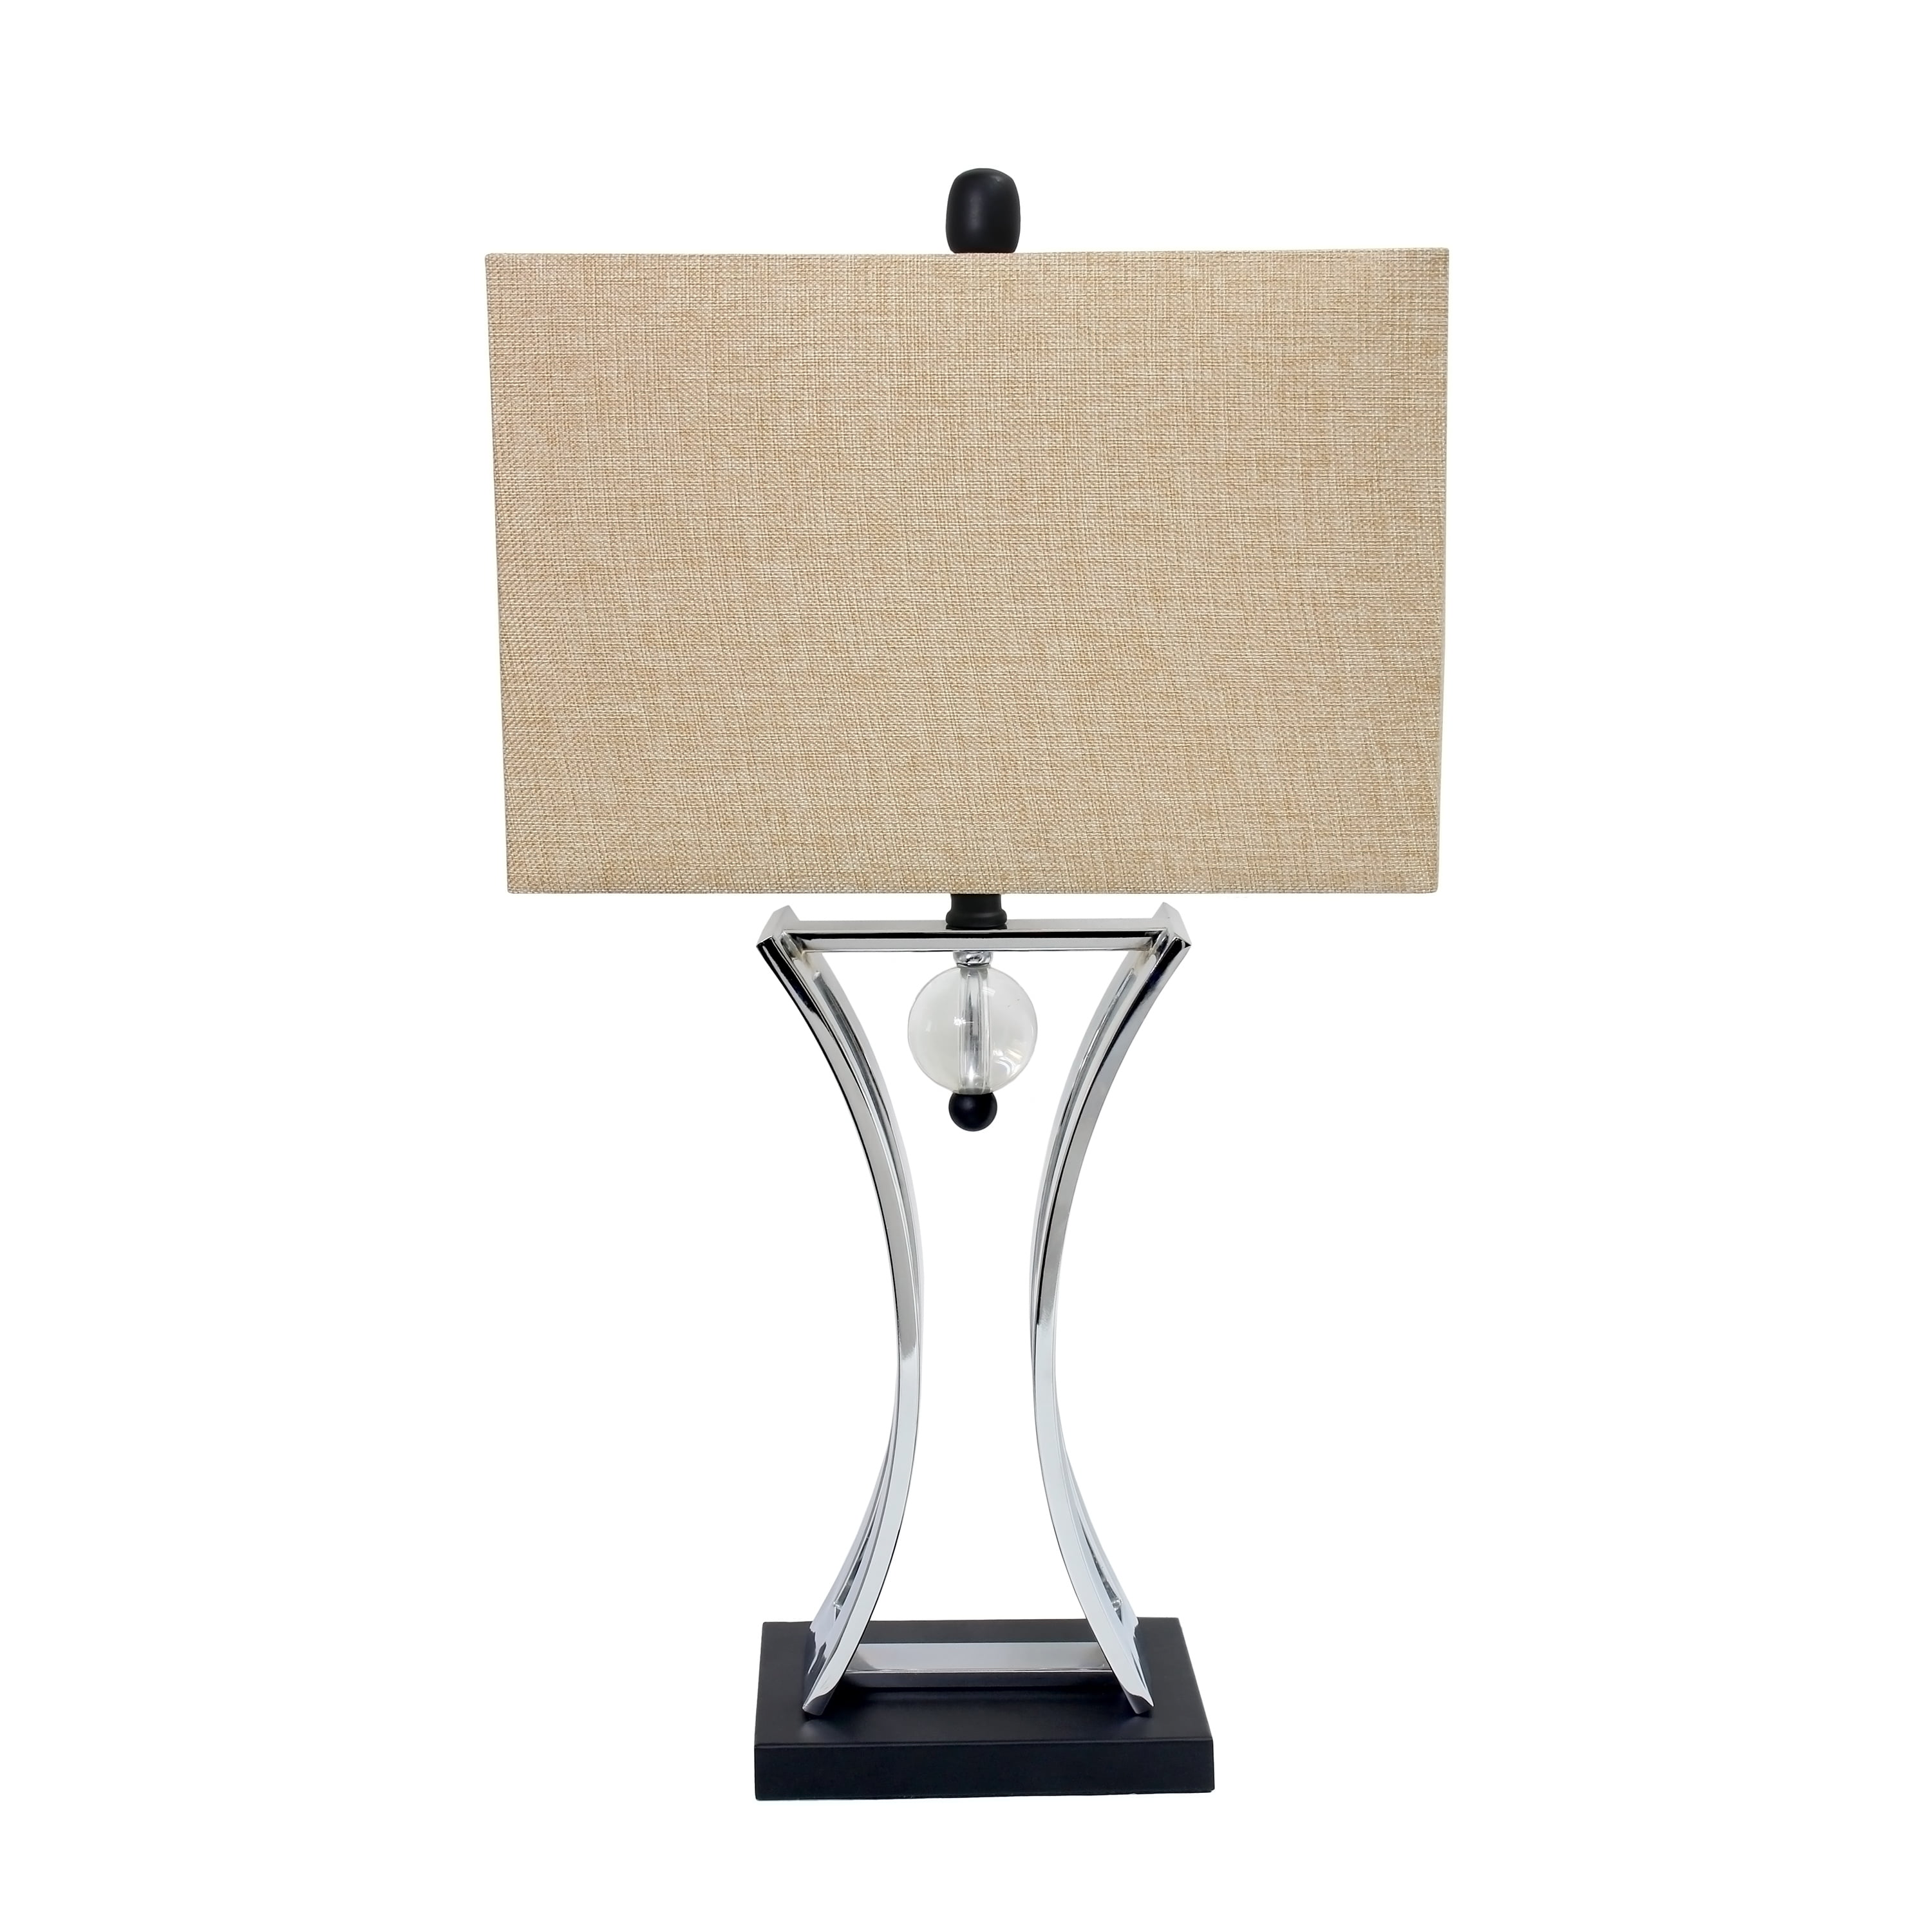 Conference Room Hourglass-Shape with Pendulum Table Lamp by All the Rages